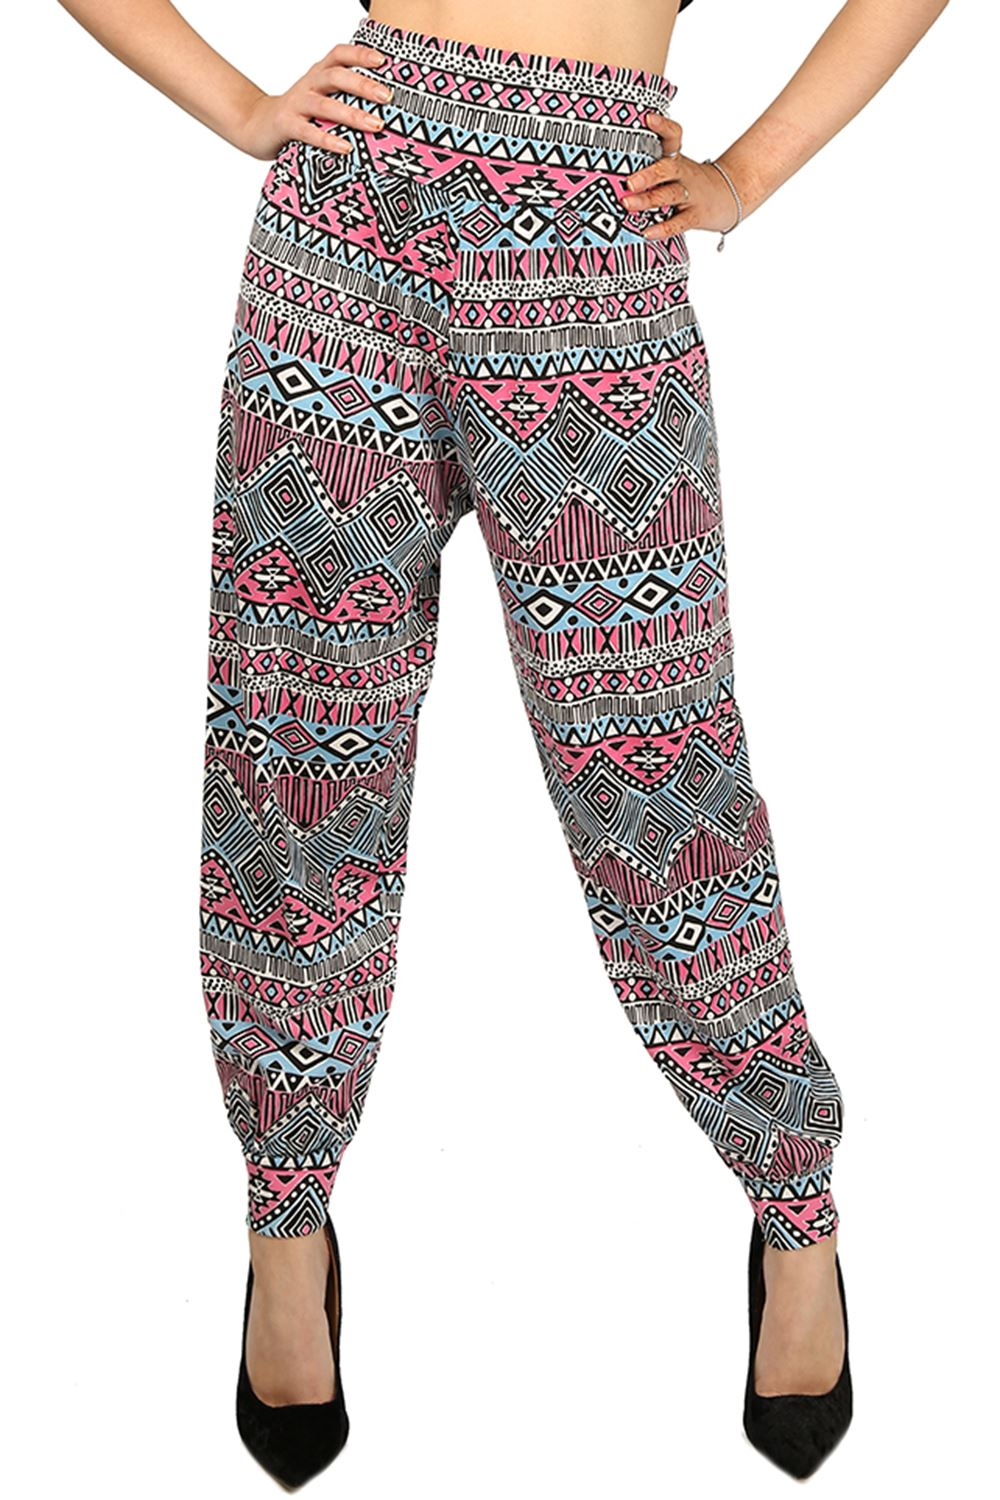 Wonderful These Are Harem Pants FOR PRETEENS Its Not Enough That So Many Fabulous And Fashionable Women All Over The Globe Have Been Taken  A Future Where They Slap On Sweatpants Jeans, Lam&233 Leopard Print Skirts And Whatever The